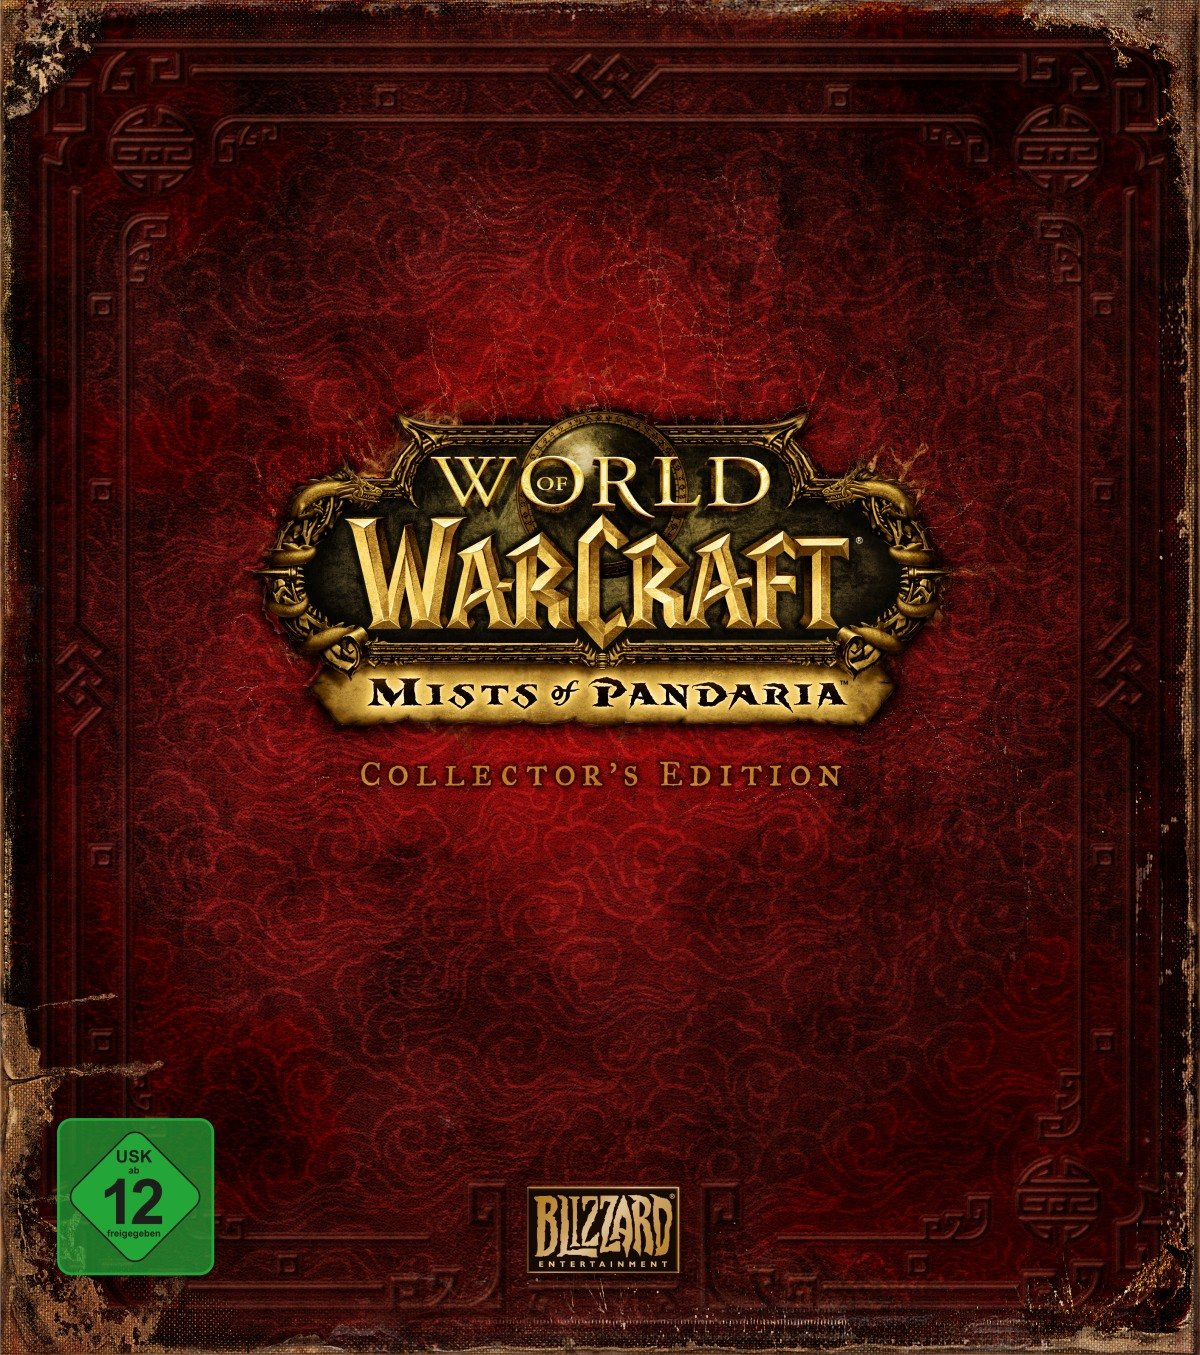 Mists of Pandaria Collectors Edition